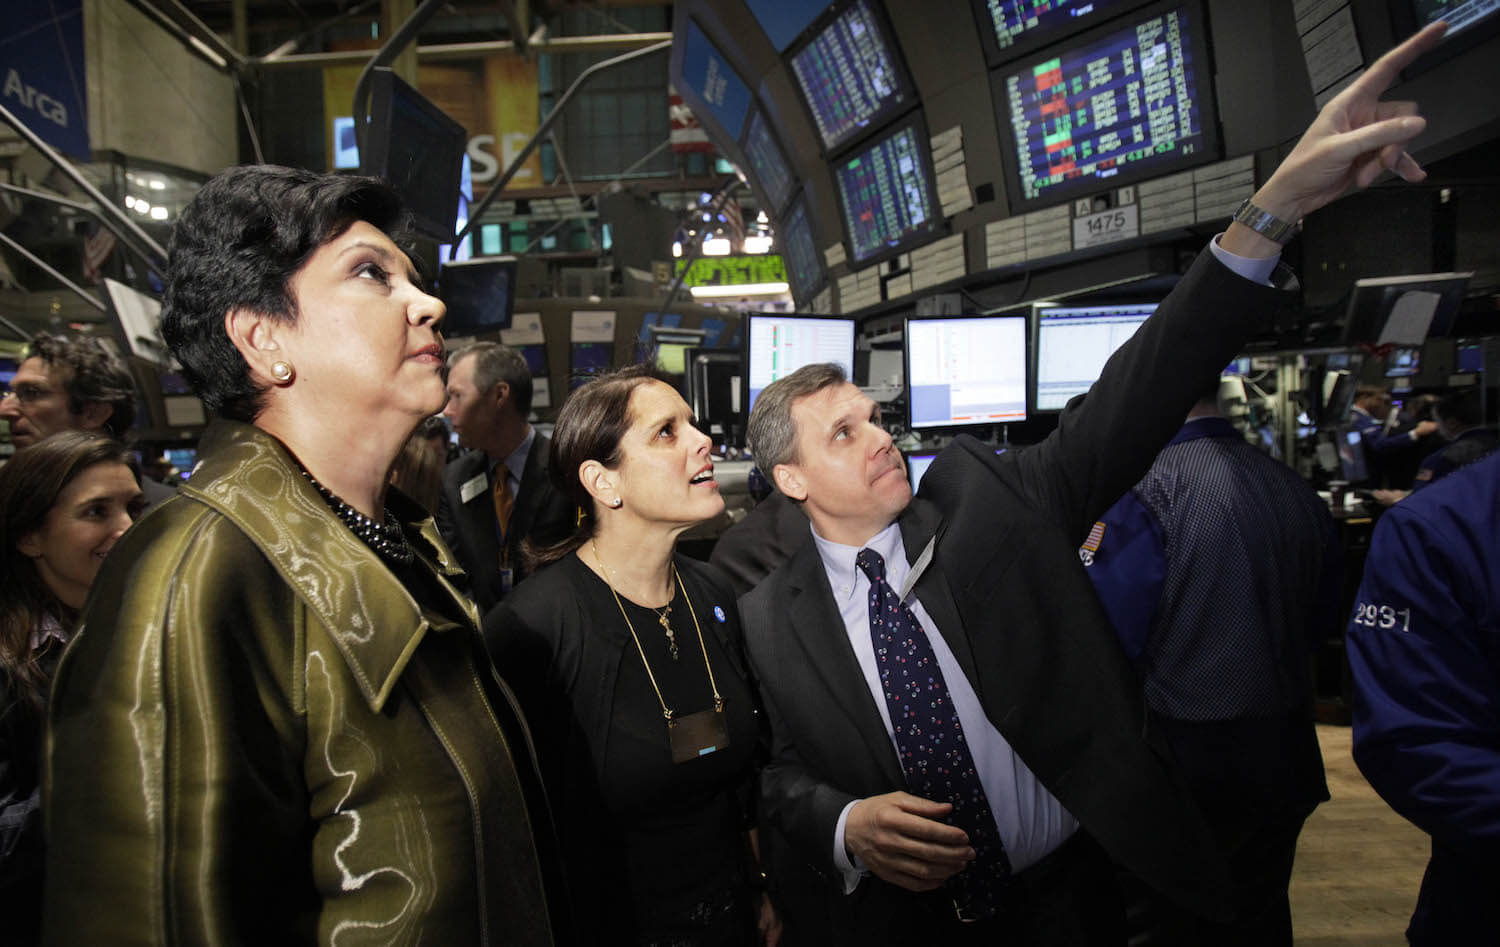 PepsiCo Inc. chairman and chief executive Indra K. Nooyi, left, and Jill Beraud, PepsiCo president of sparkling brands, meet with Barclays Capital investor relations representative Carmen Barone, right, at the post that trades Pepsi on the floor of the New York Stock Exchange Monday, Feb. 1, 2010. (AP Photo/Richard Drew)